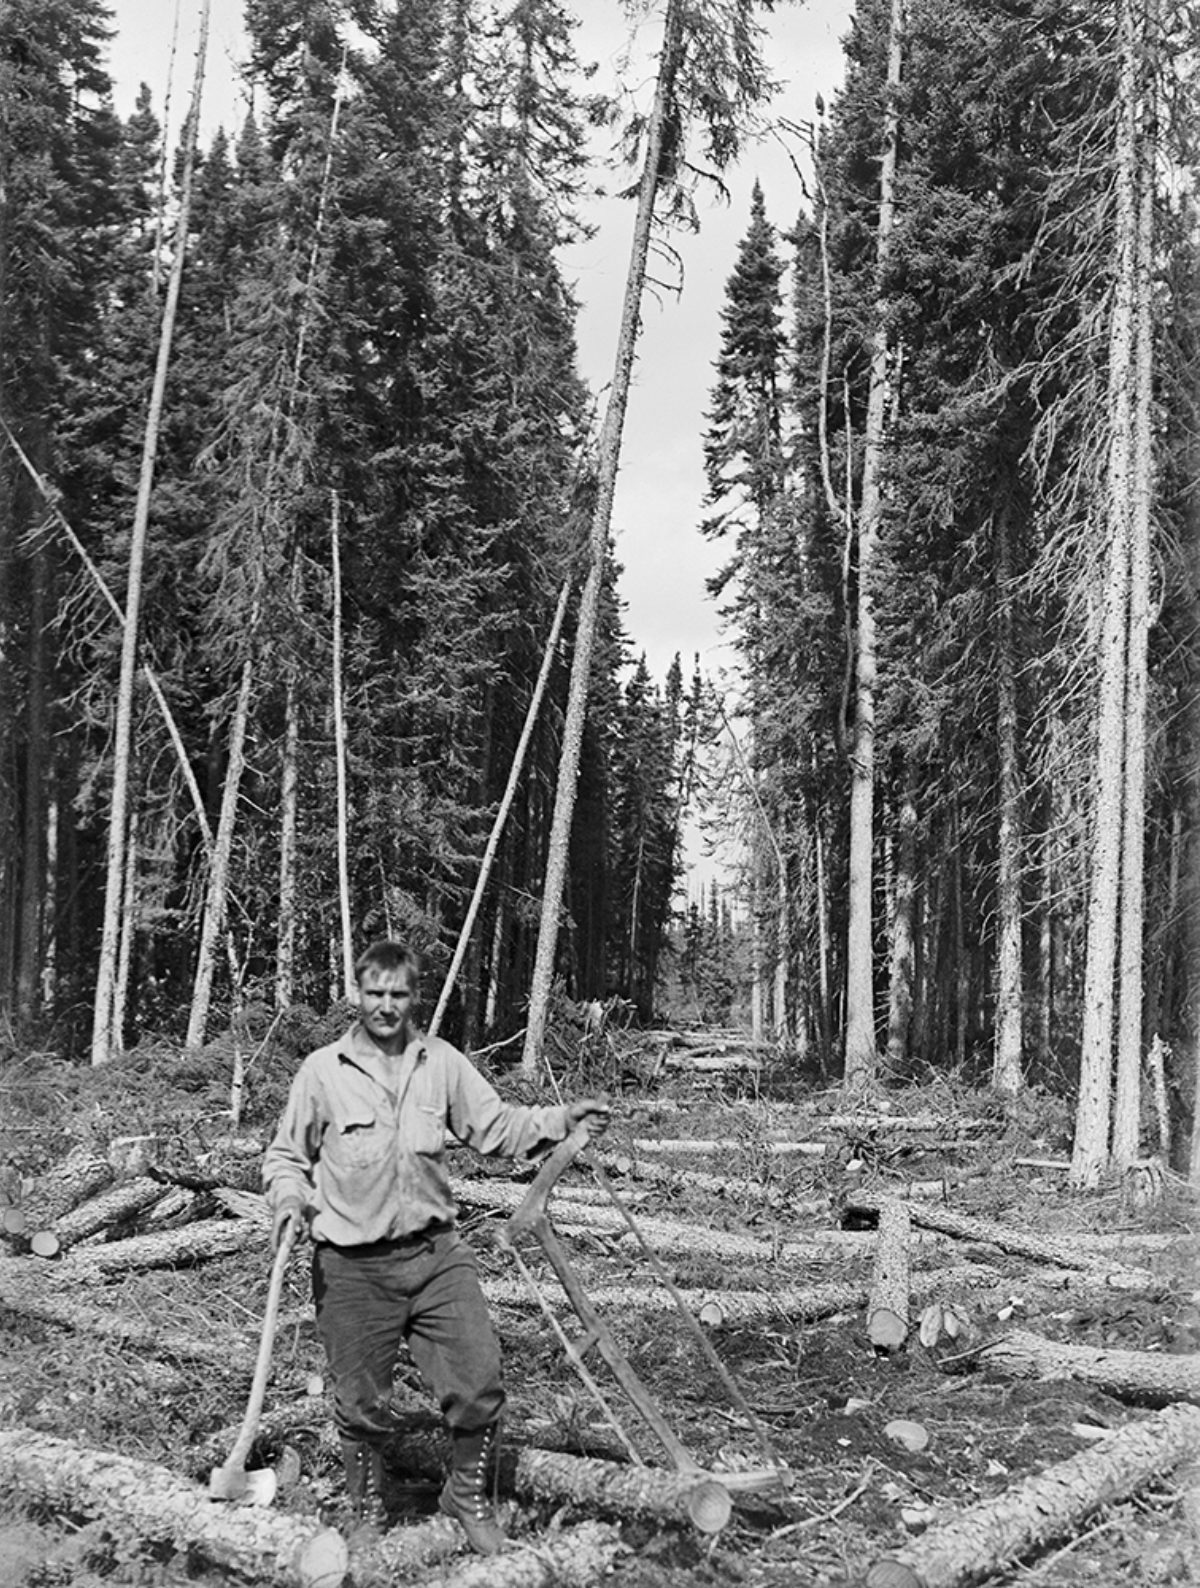 A 'pulpwood worker' near Port Arthur, Ontario, Canada, 1927. Photo: Sakari Pälsi / Picture Collections of the Finnish Heritage Agency